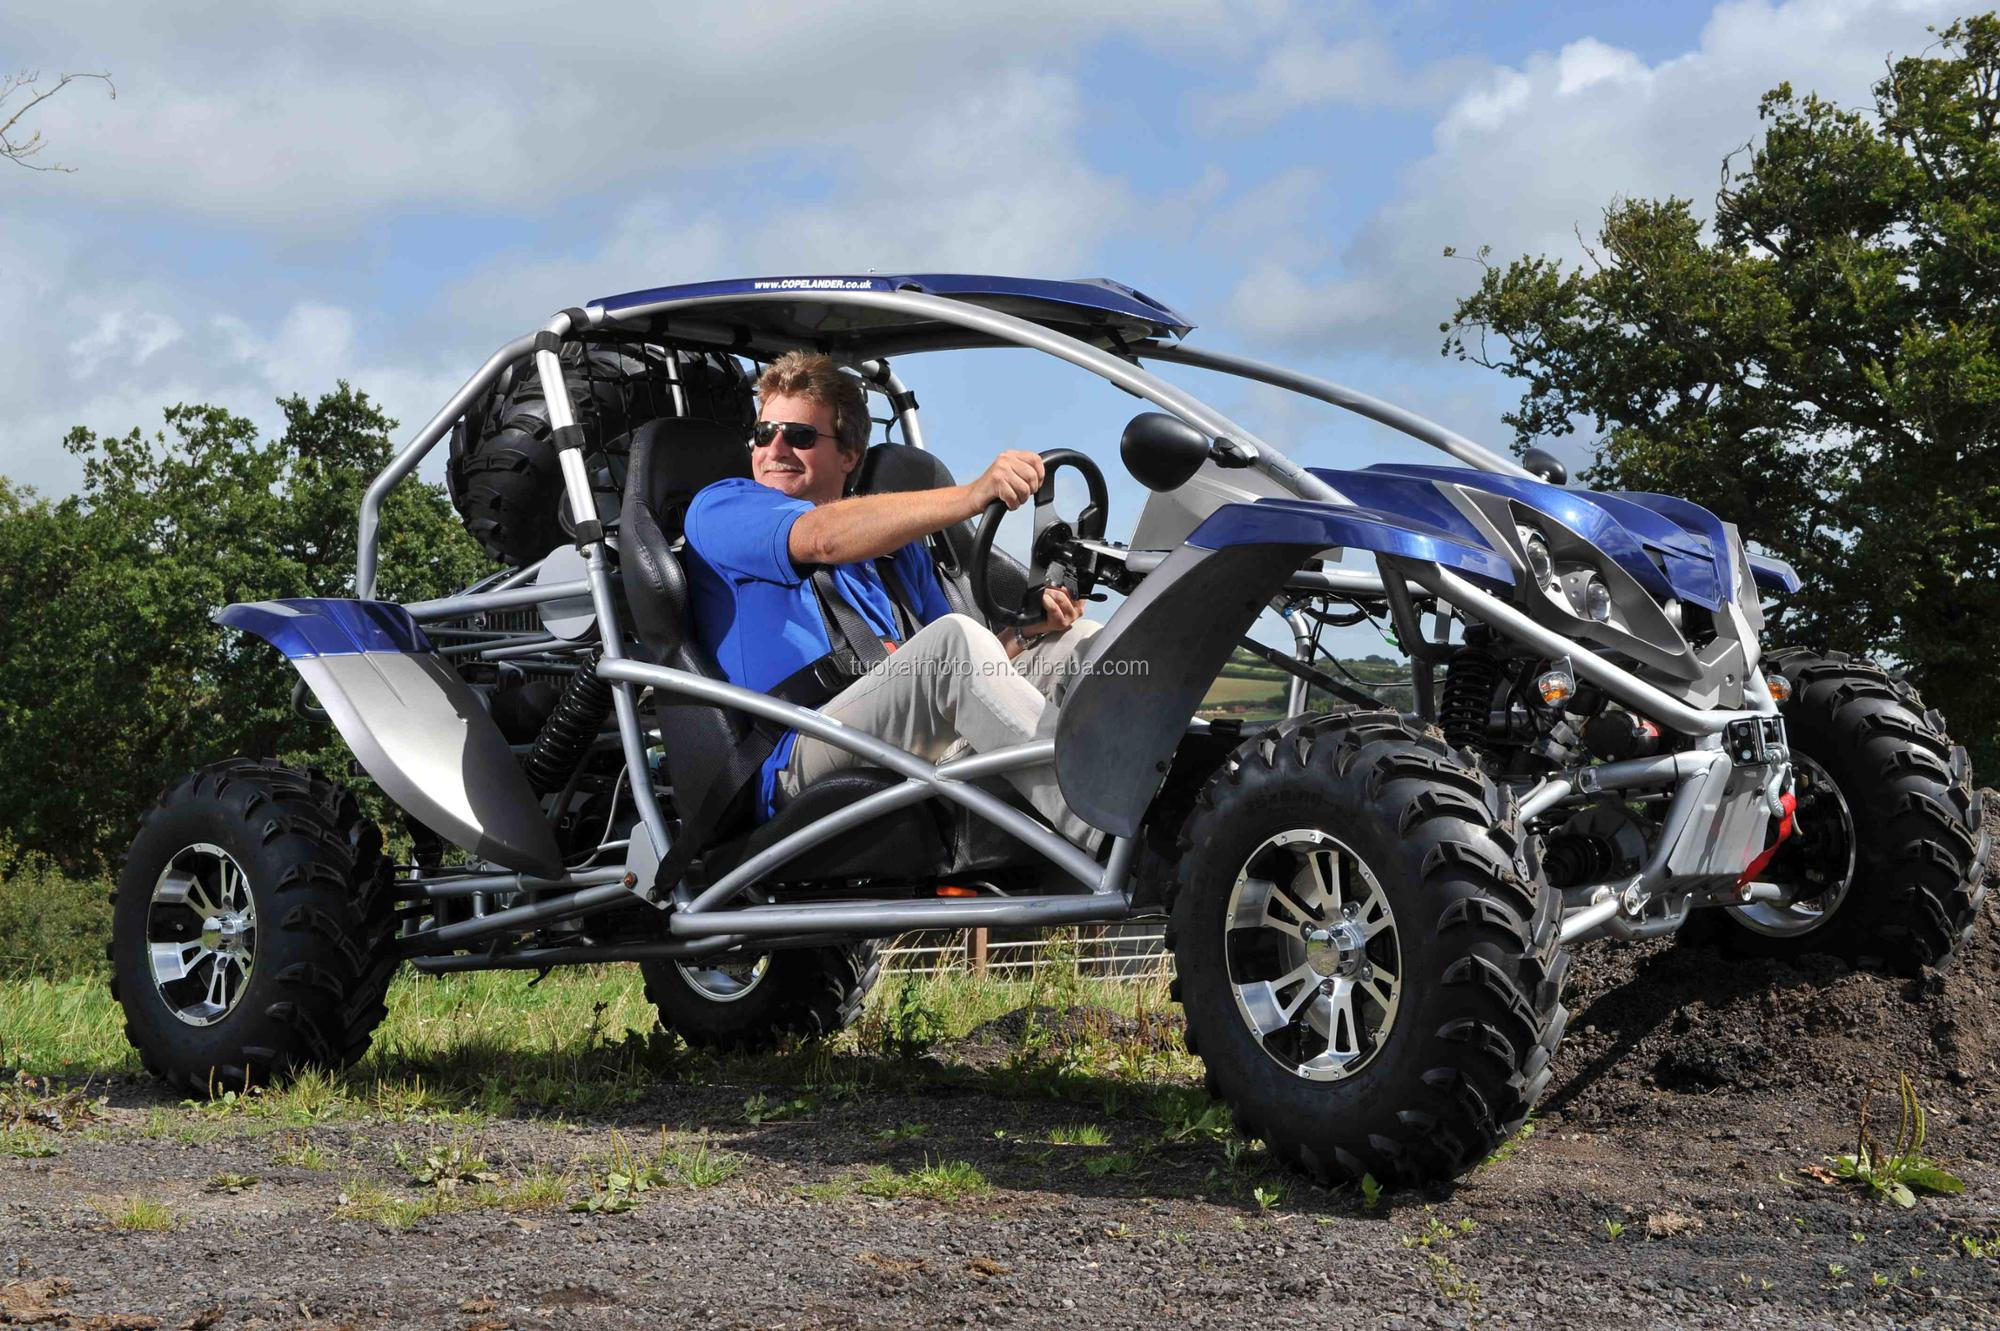 euro eec dune buggy 4x4 1100cc for road legal use (TKG1100-1)